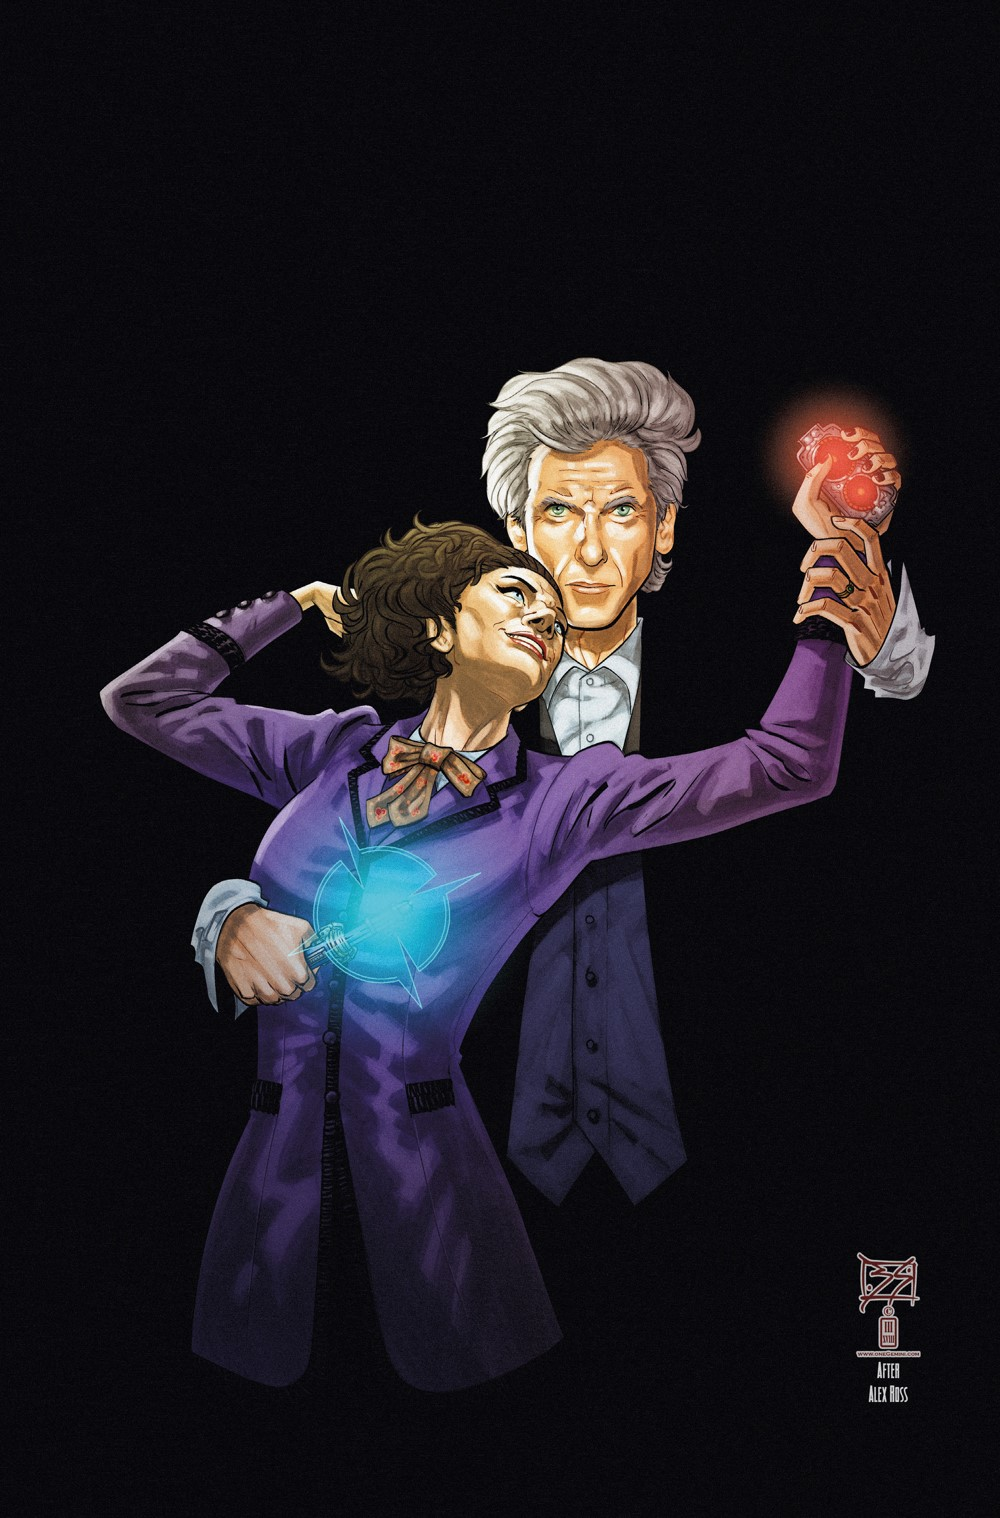 DW_Missy_4_01_COVER5 ComicList Previews: DOCTOR WHO MISSY #4